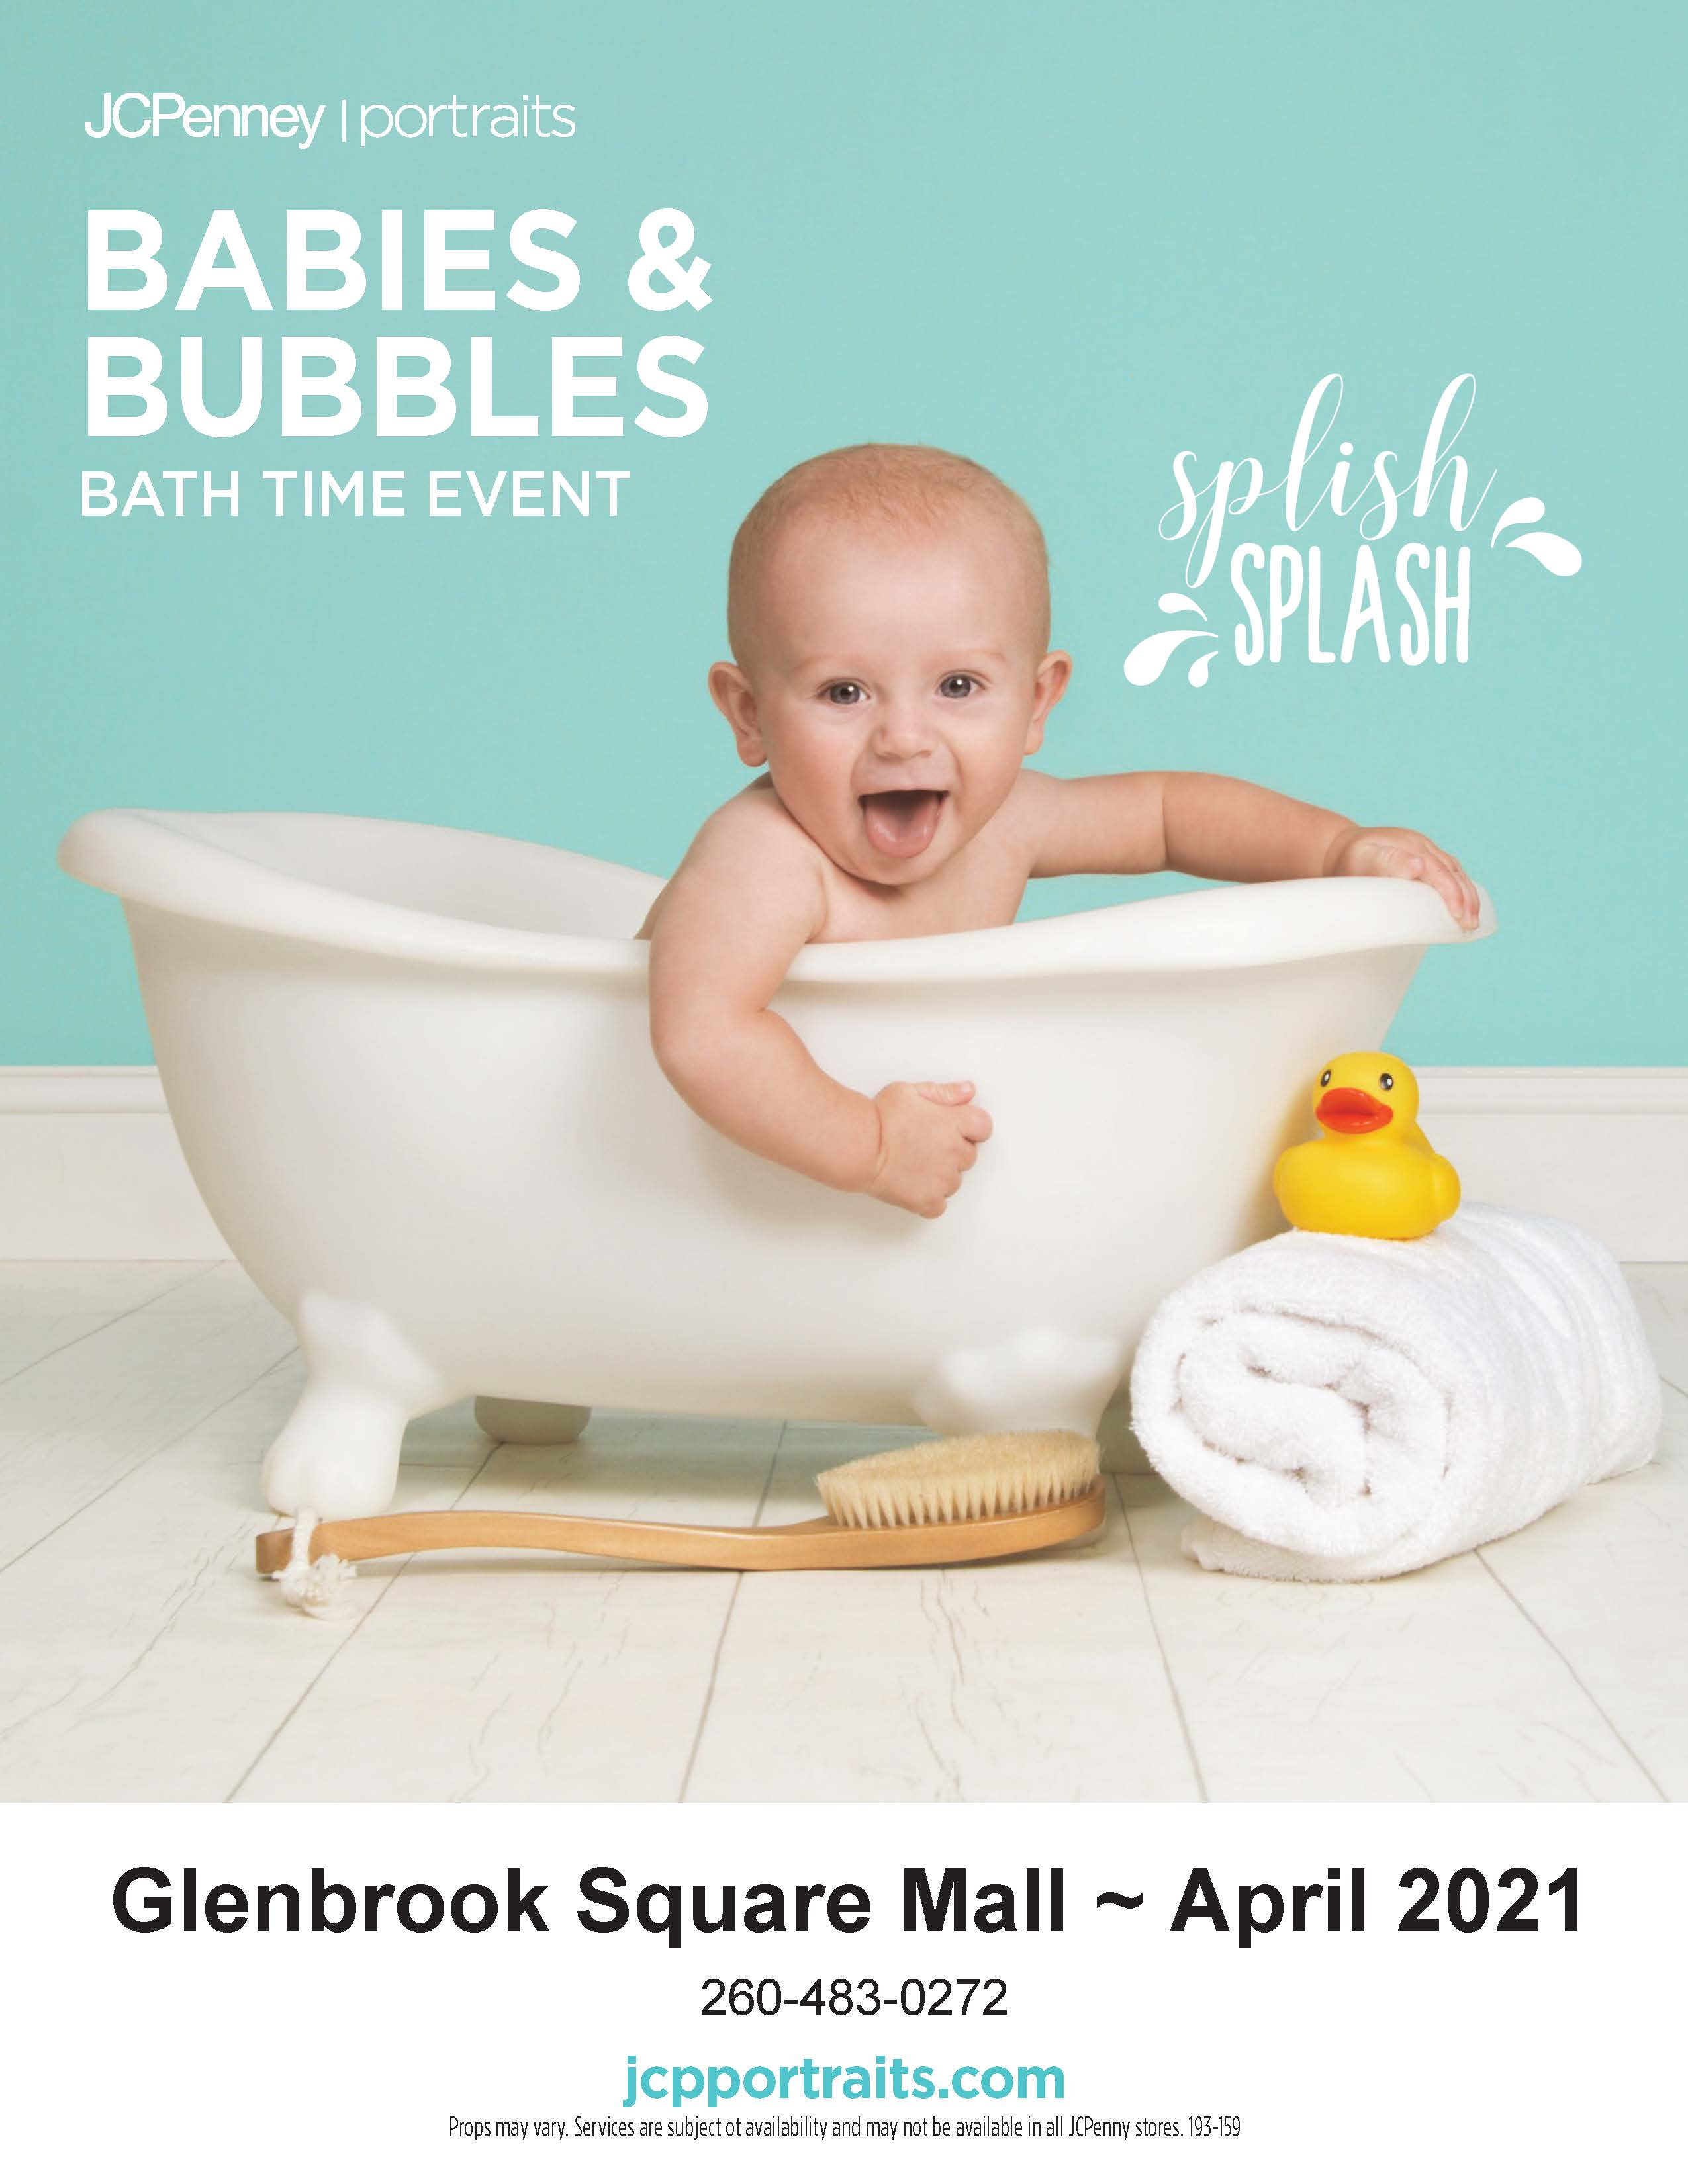 Babies and Bubbles Event from JCPenney